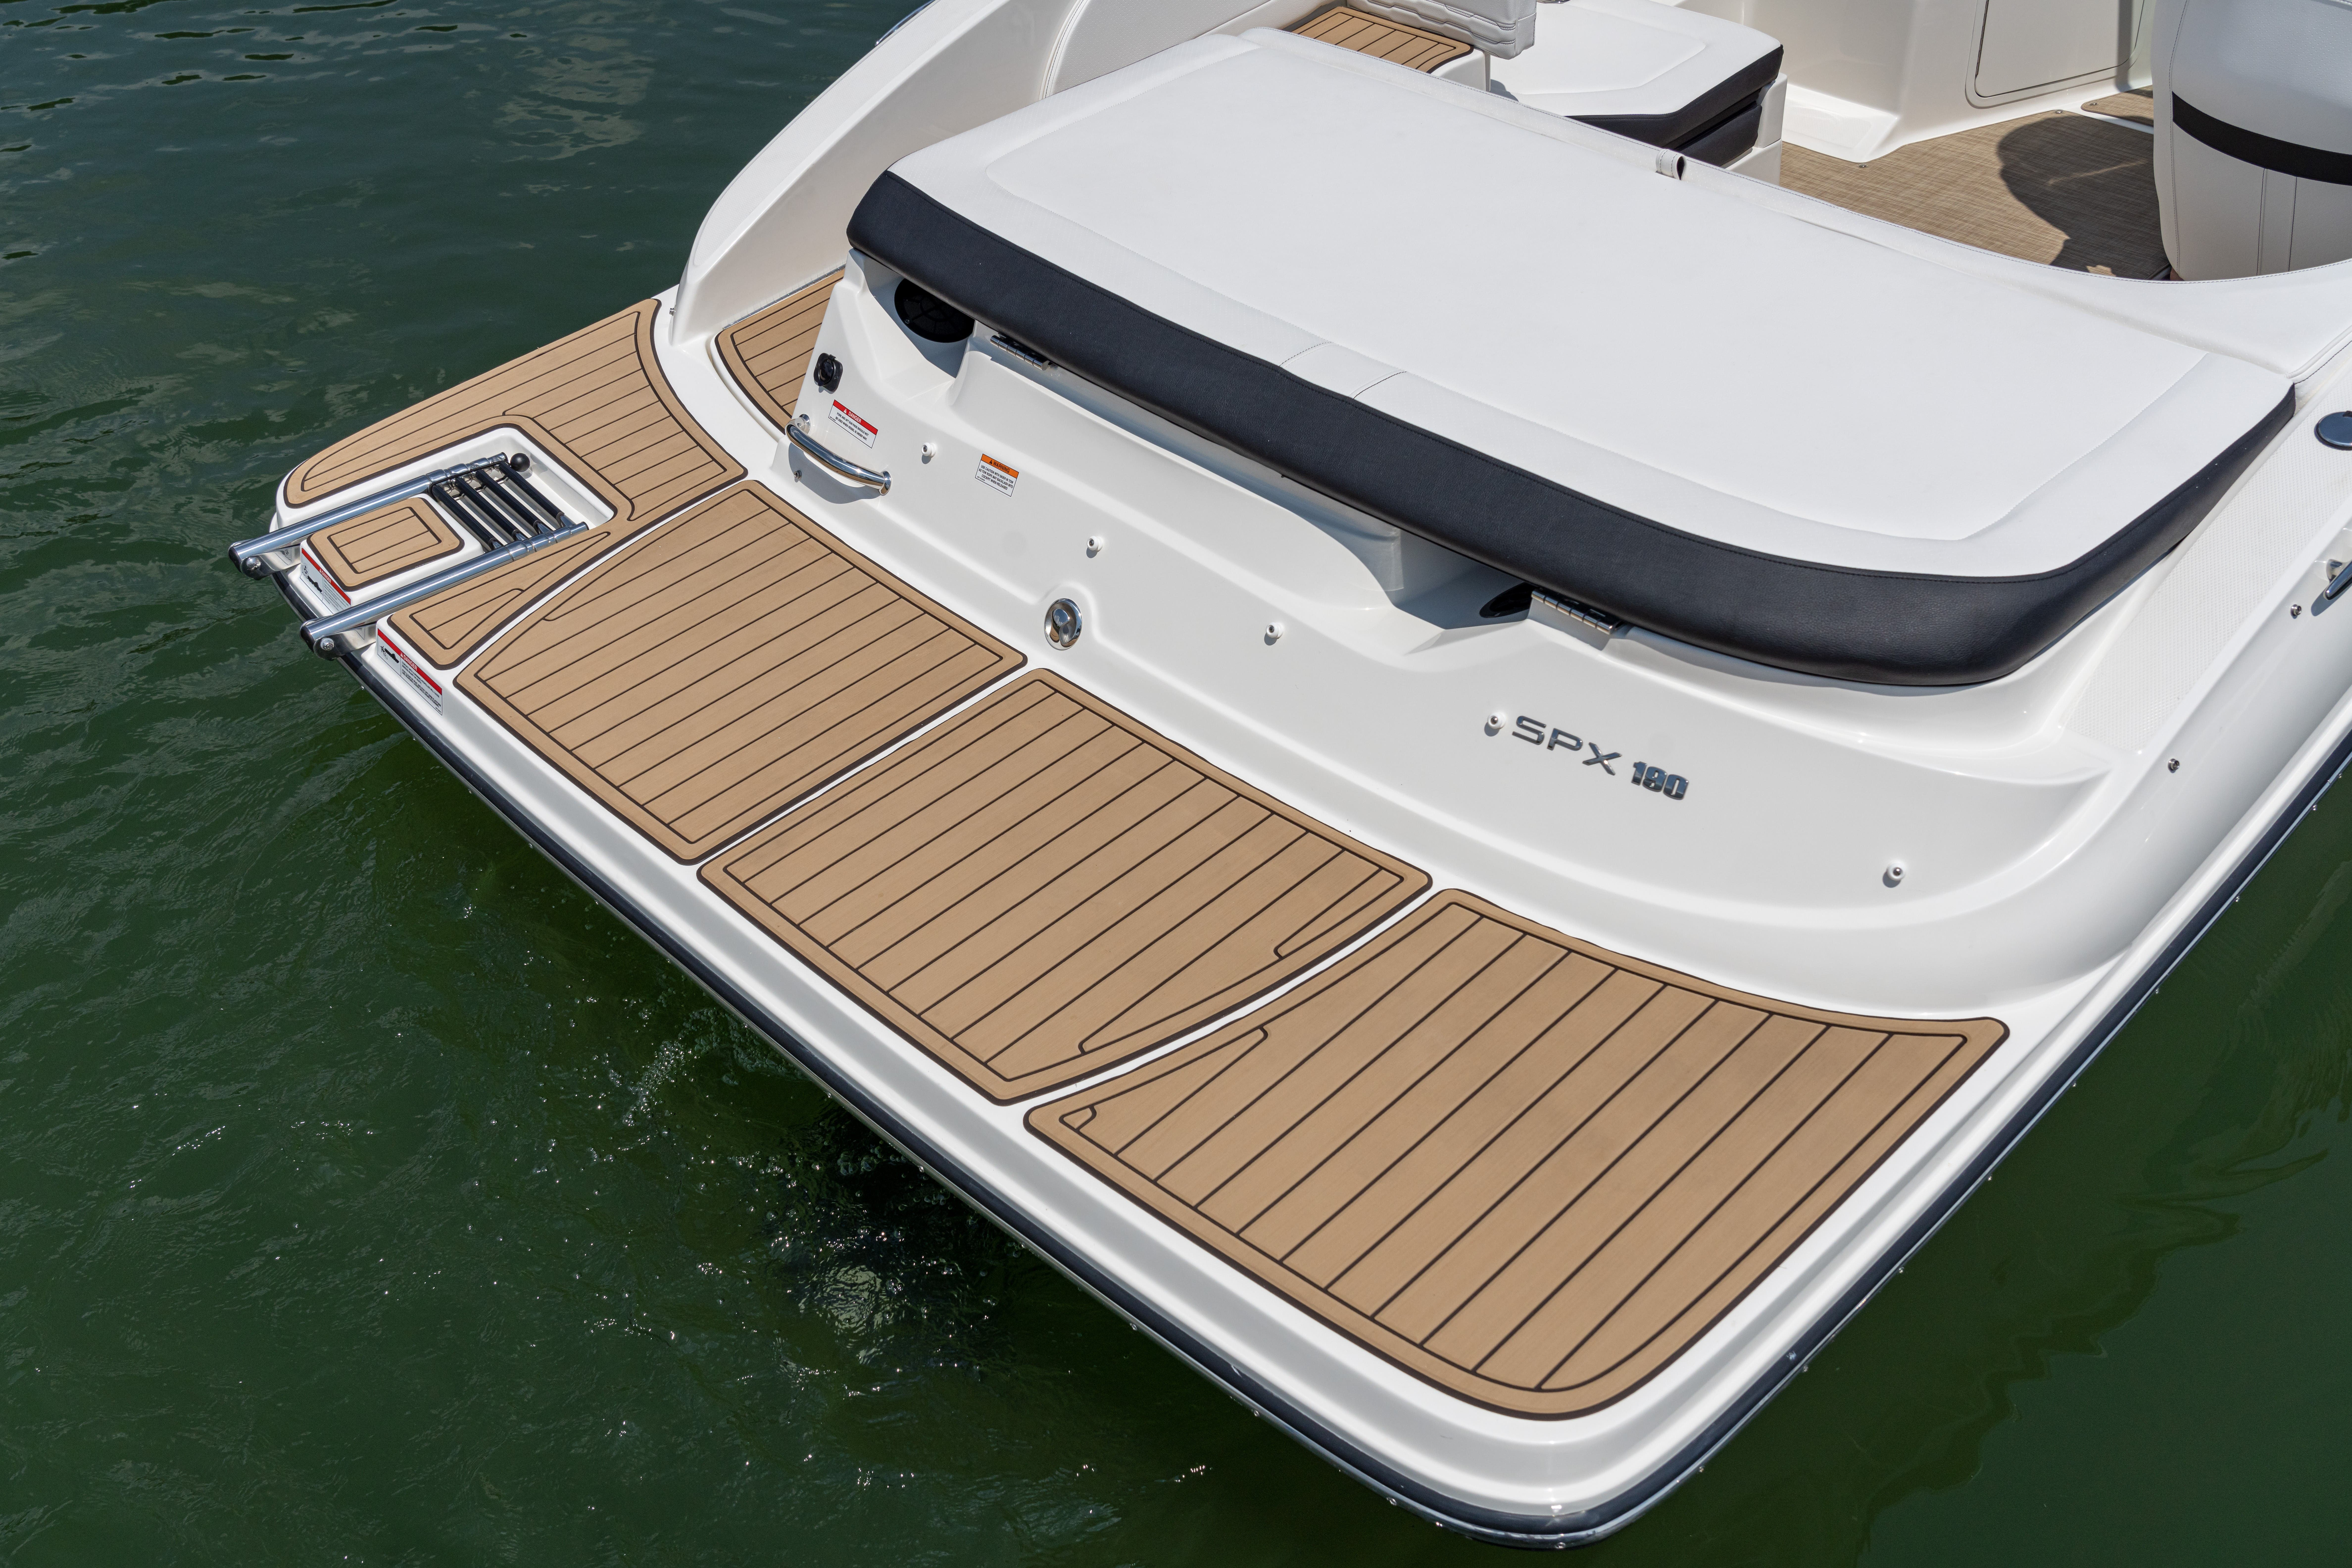 2022 Sea Ray boat for sale, model of the boat is 190SPX & Image # 6 of 7